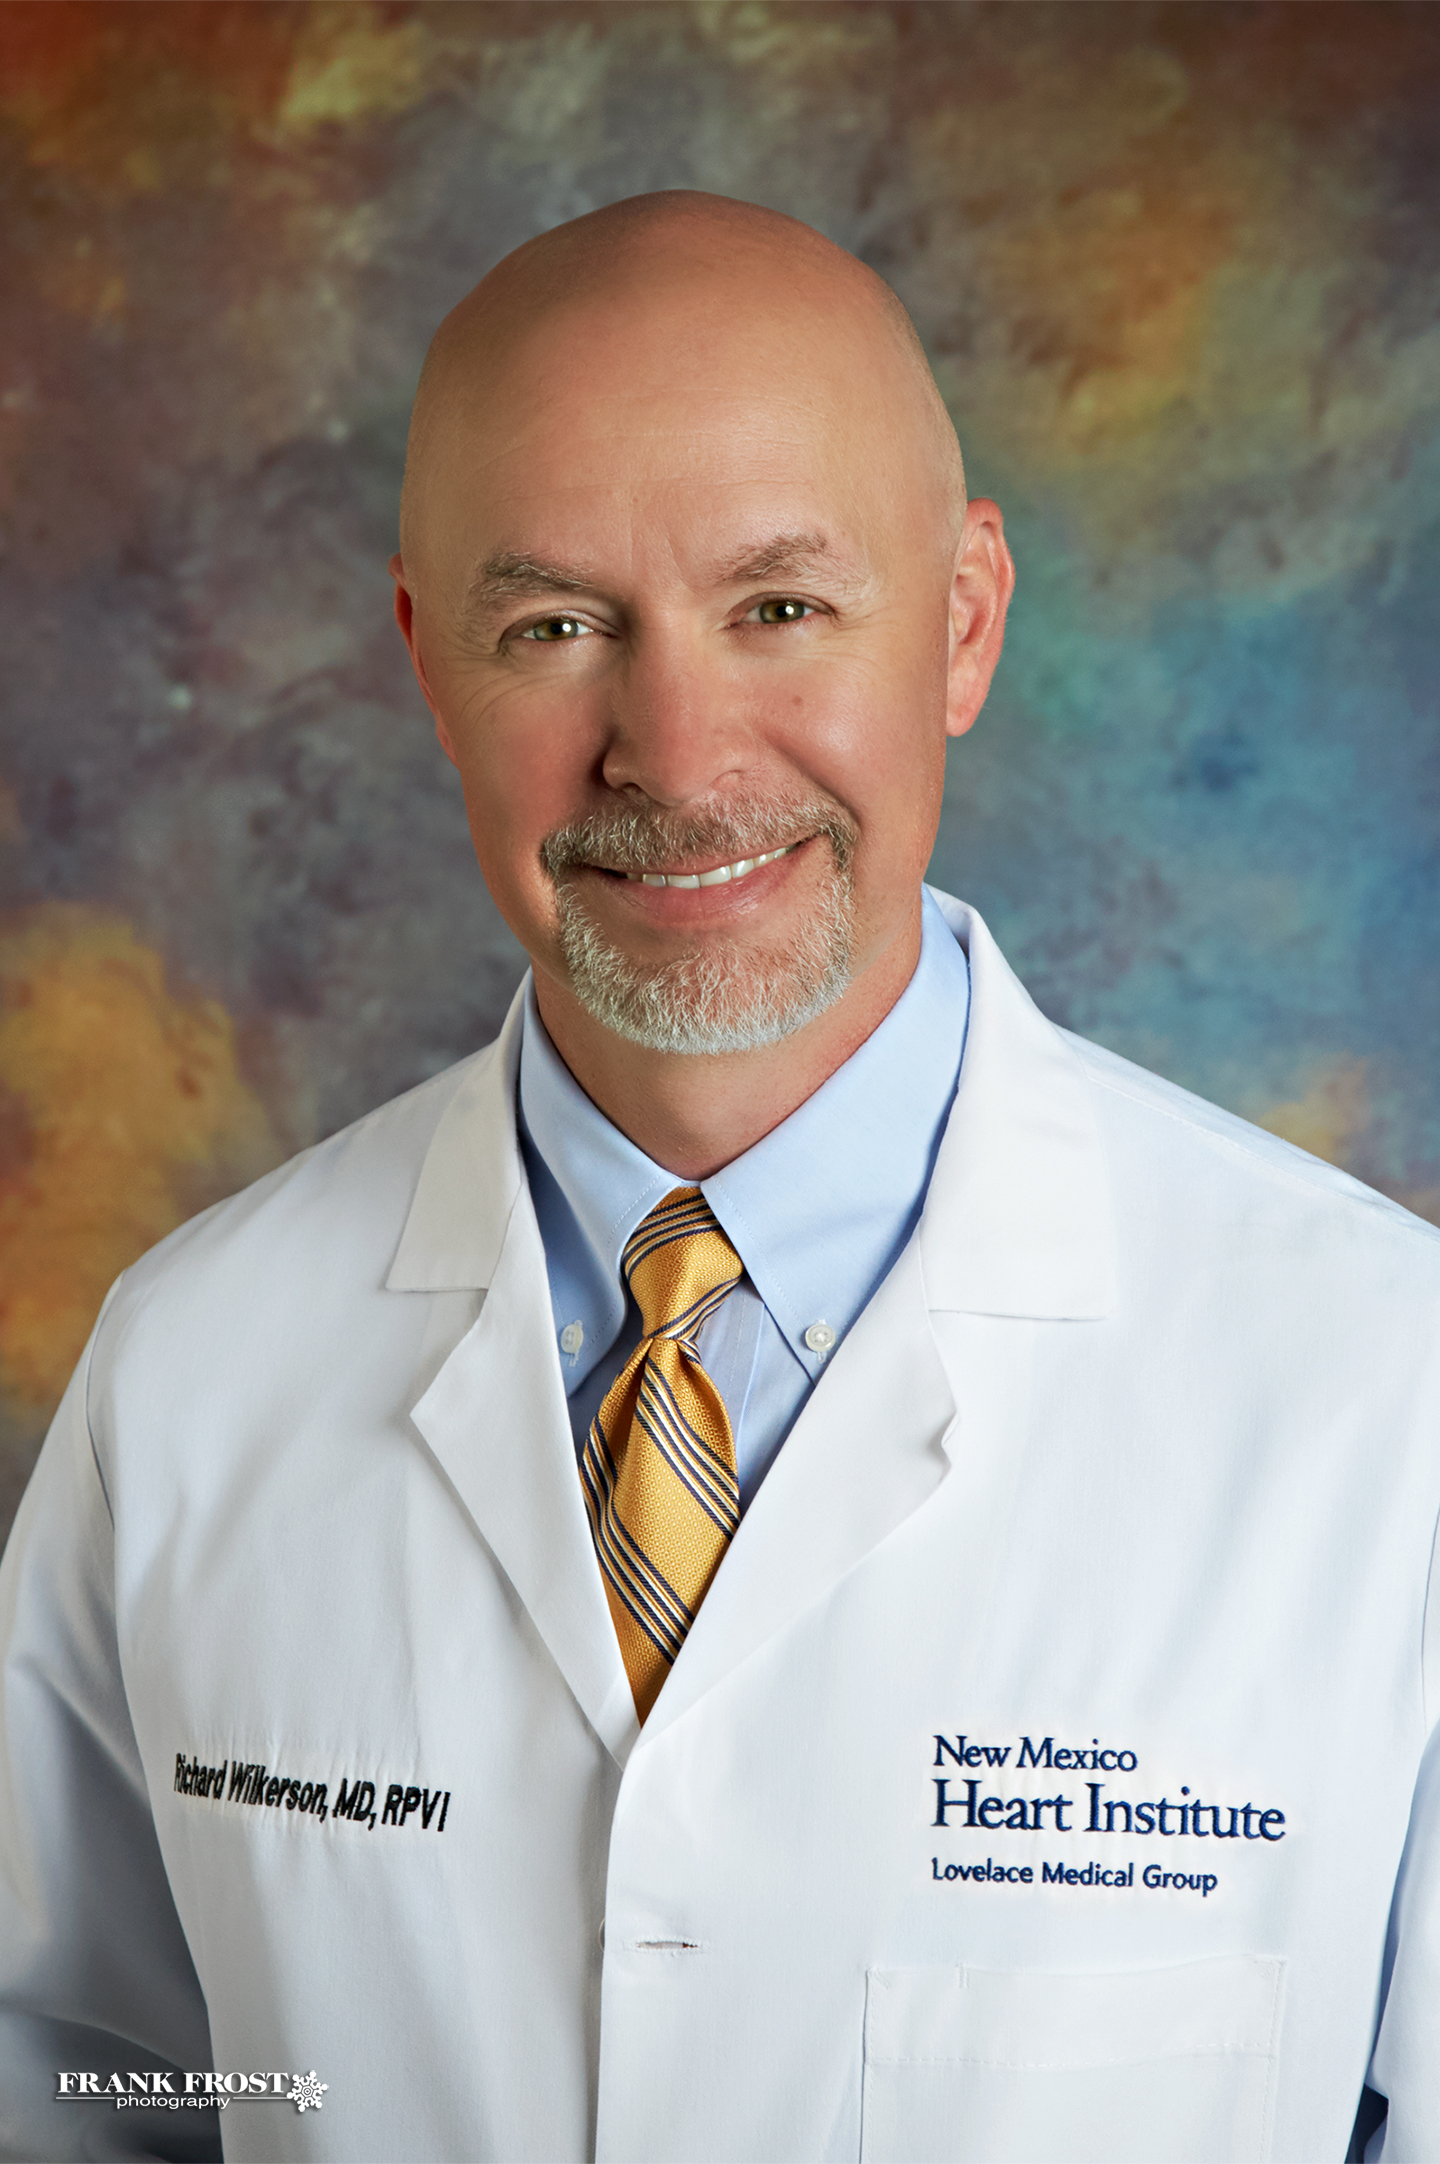 Richard Wilkerson, MD, RPVI